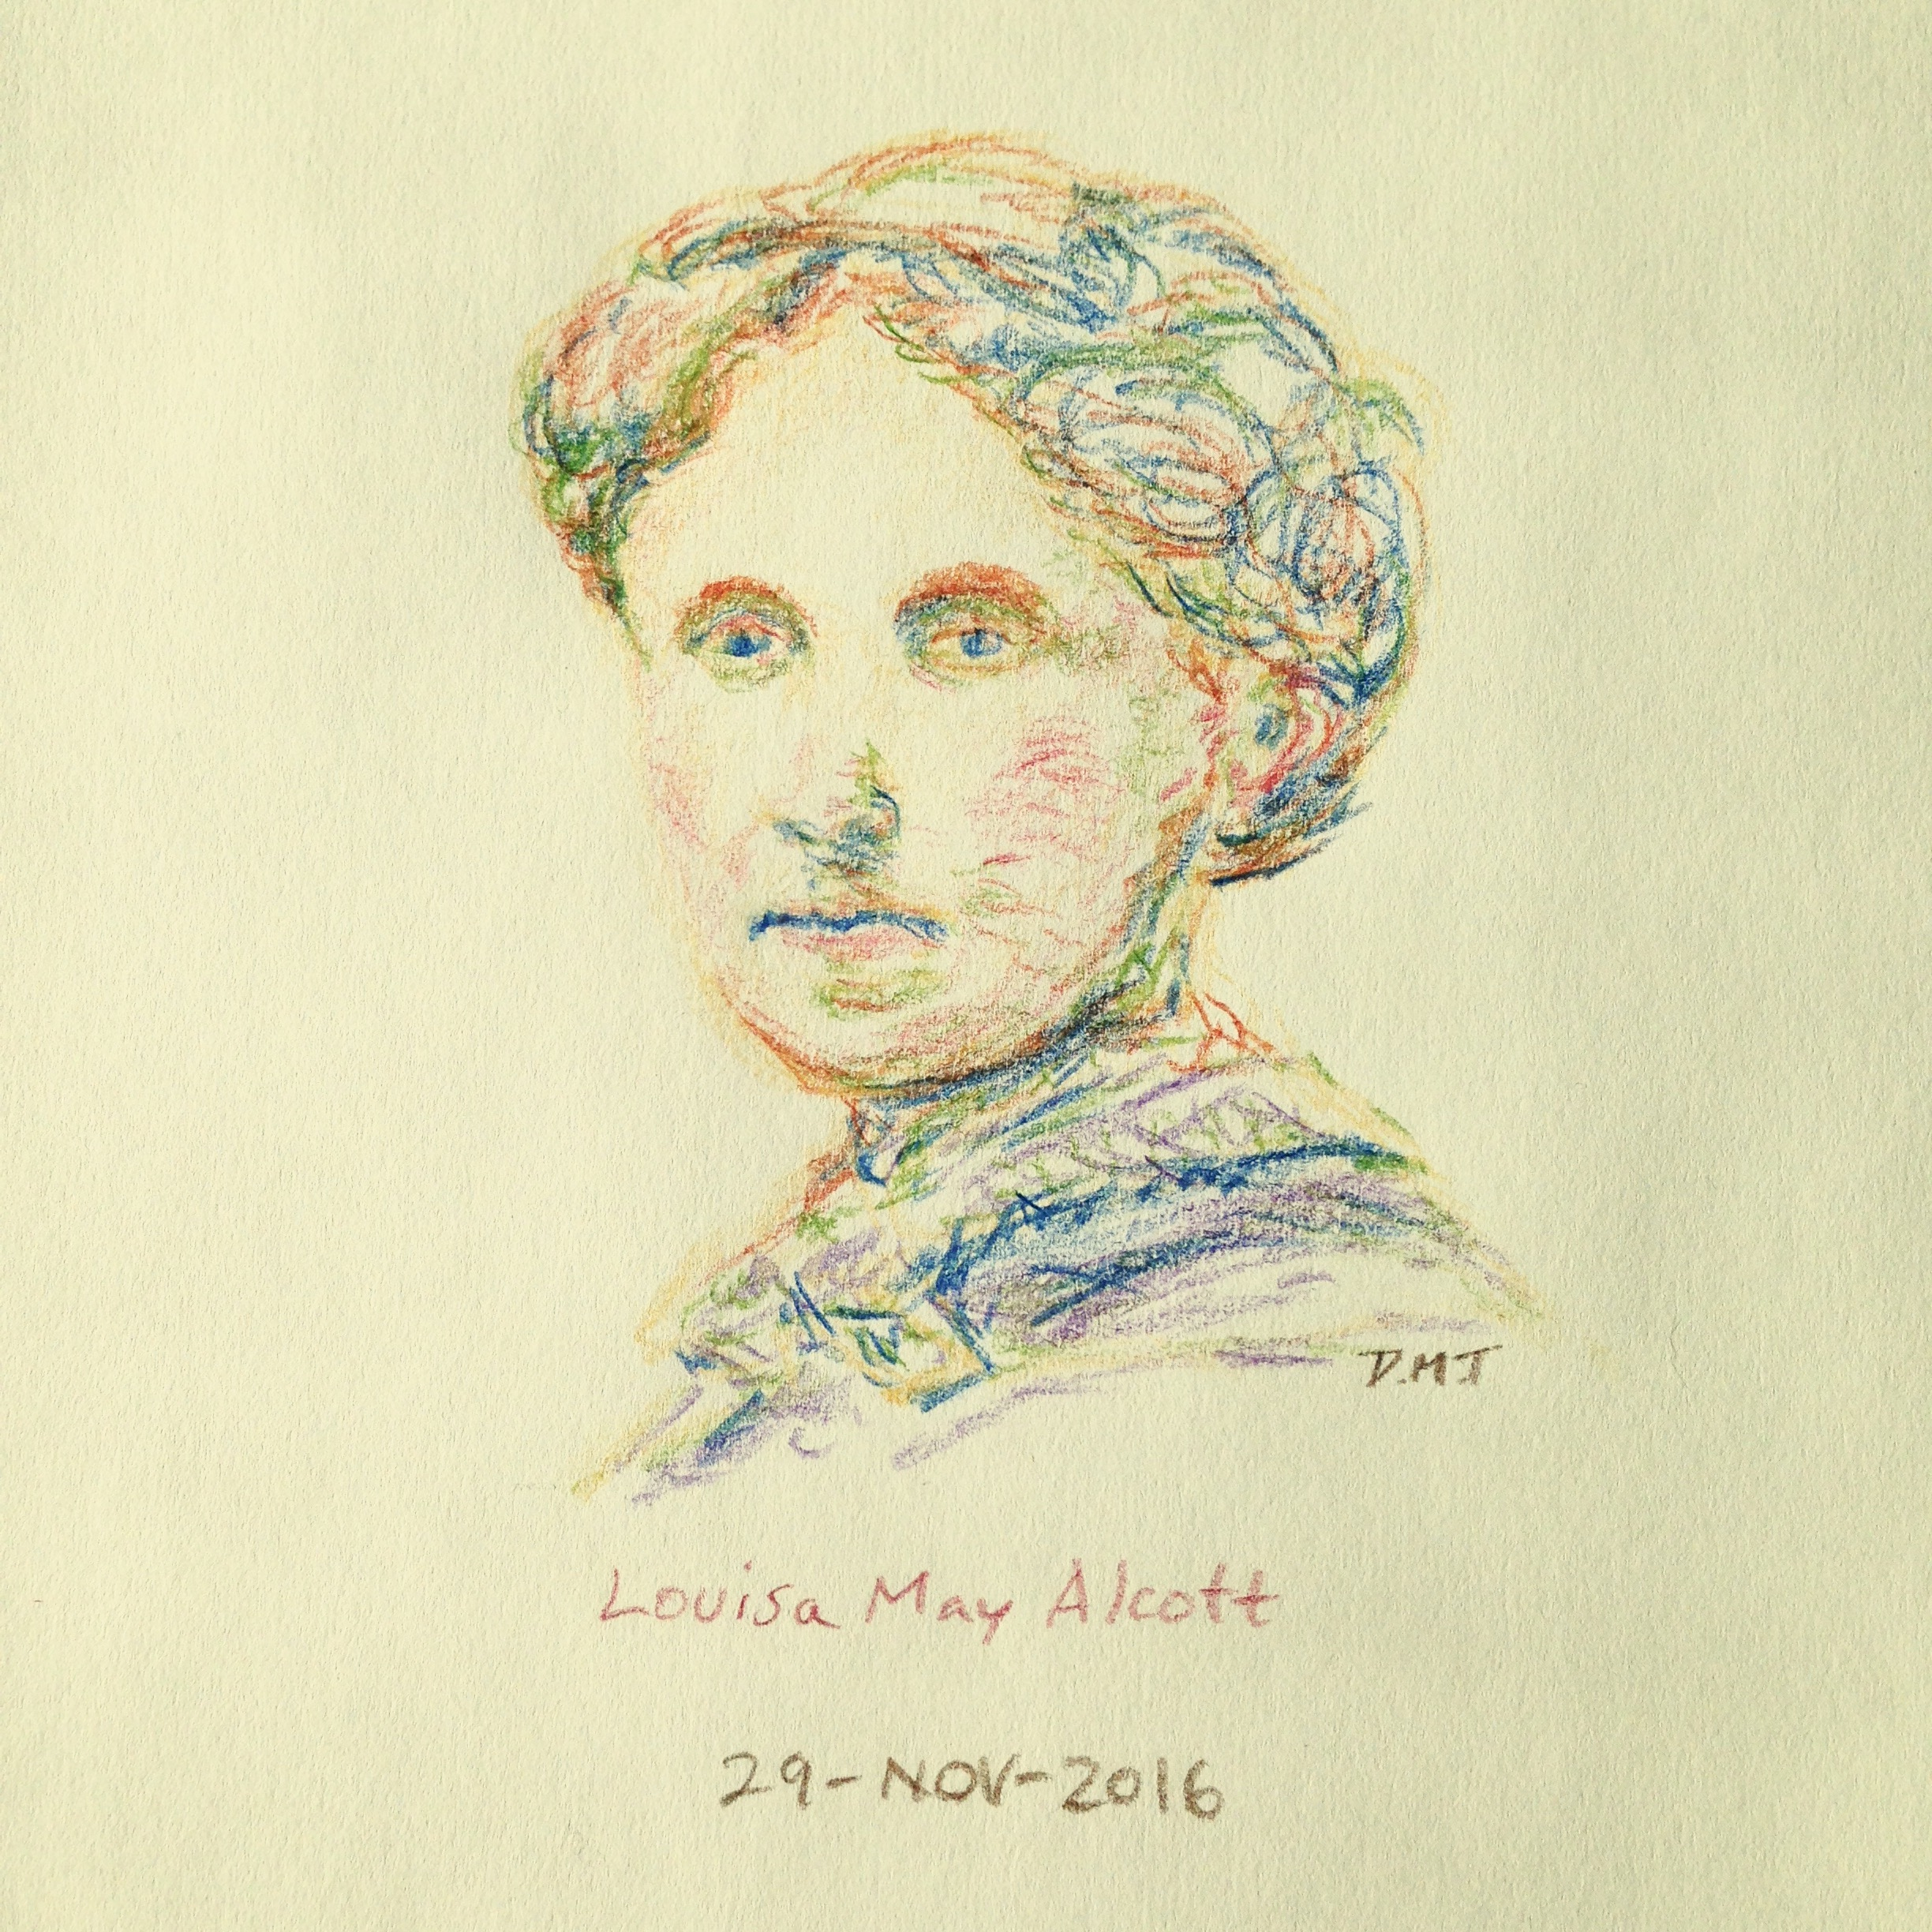 colored pencil drawing of Louisa May Alcott